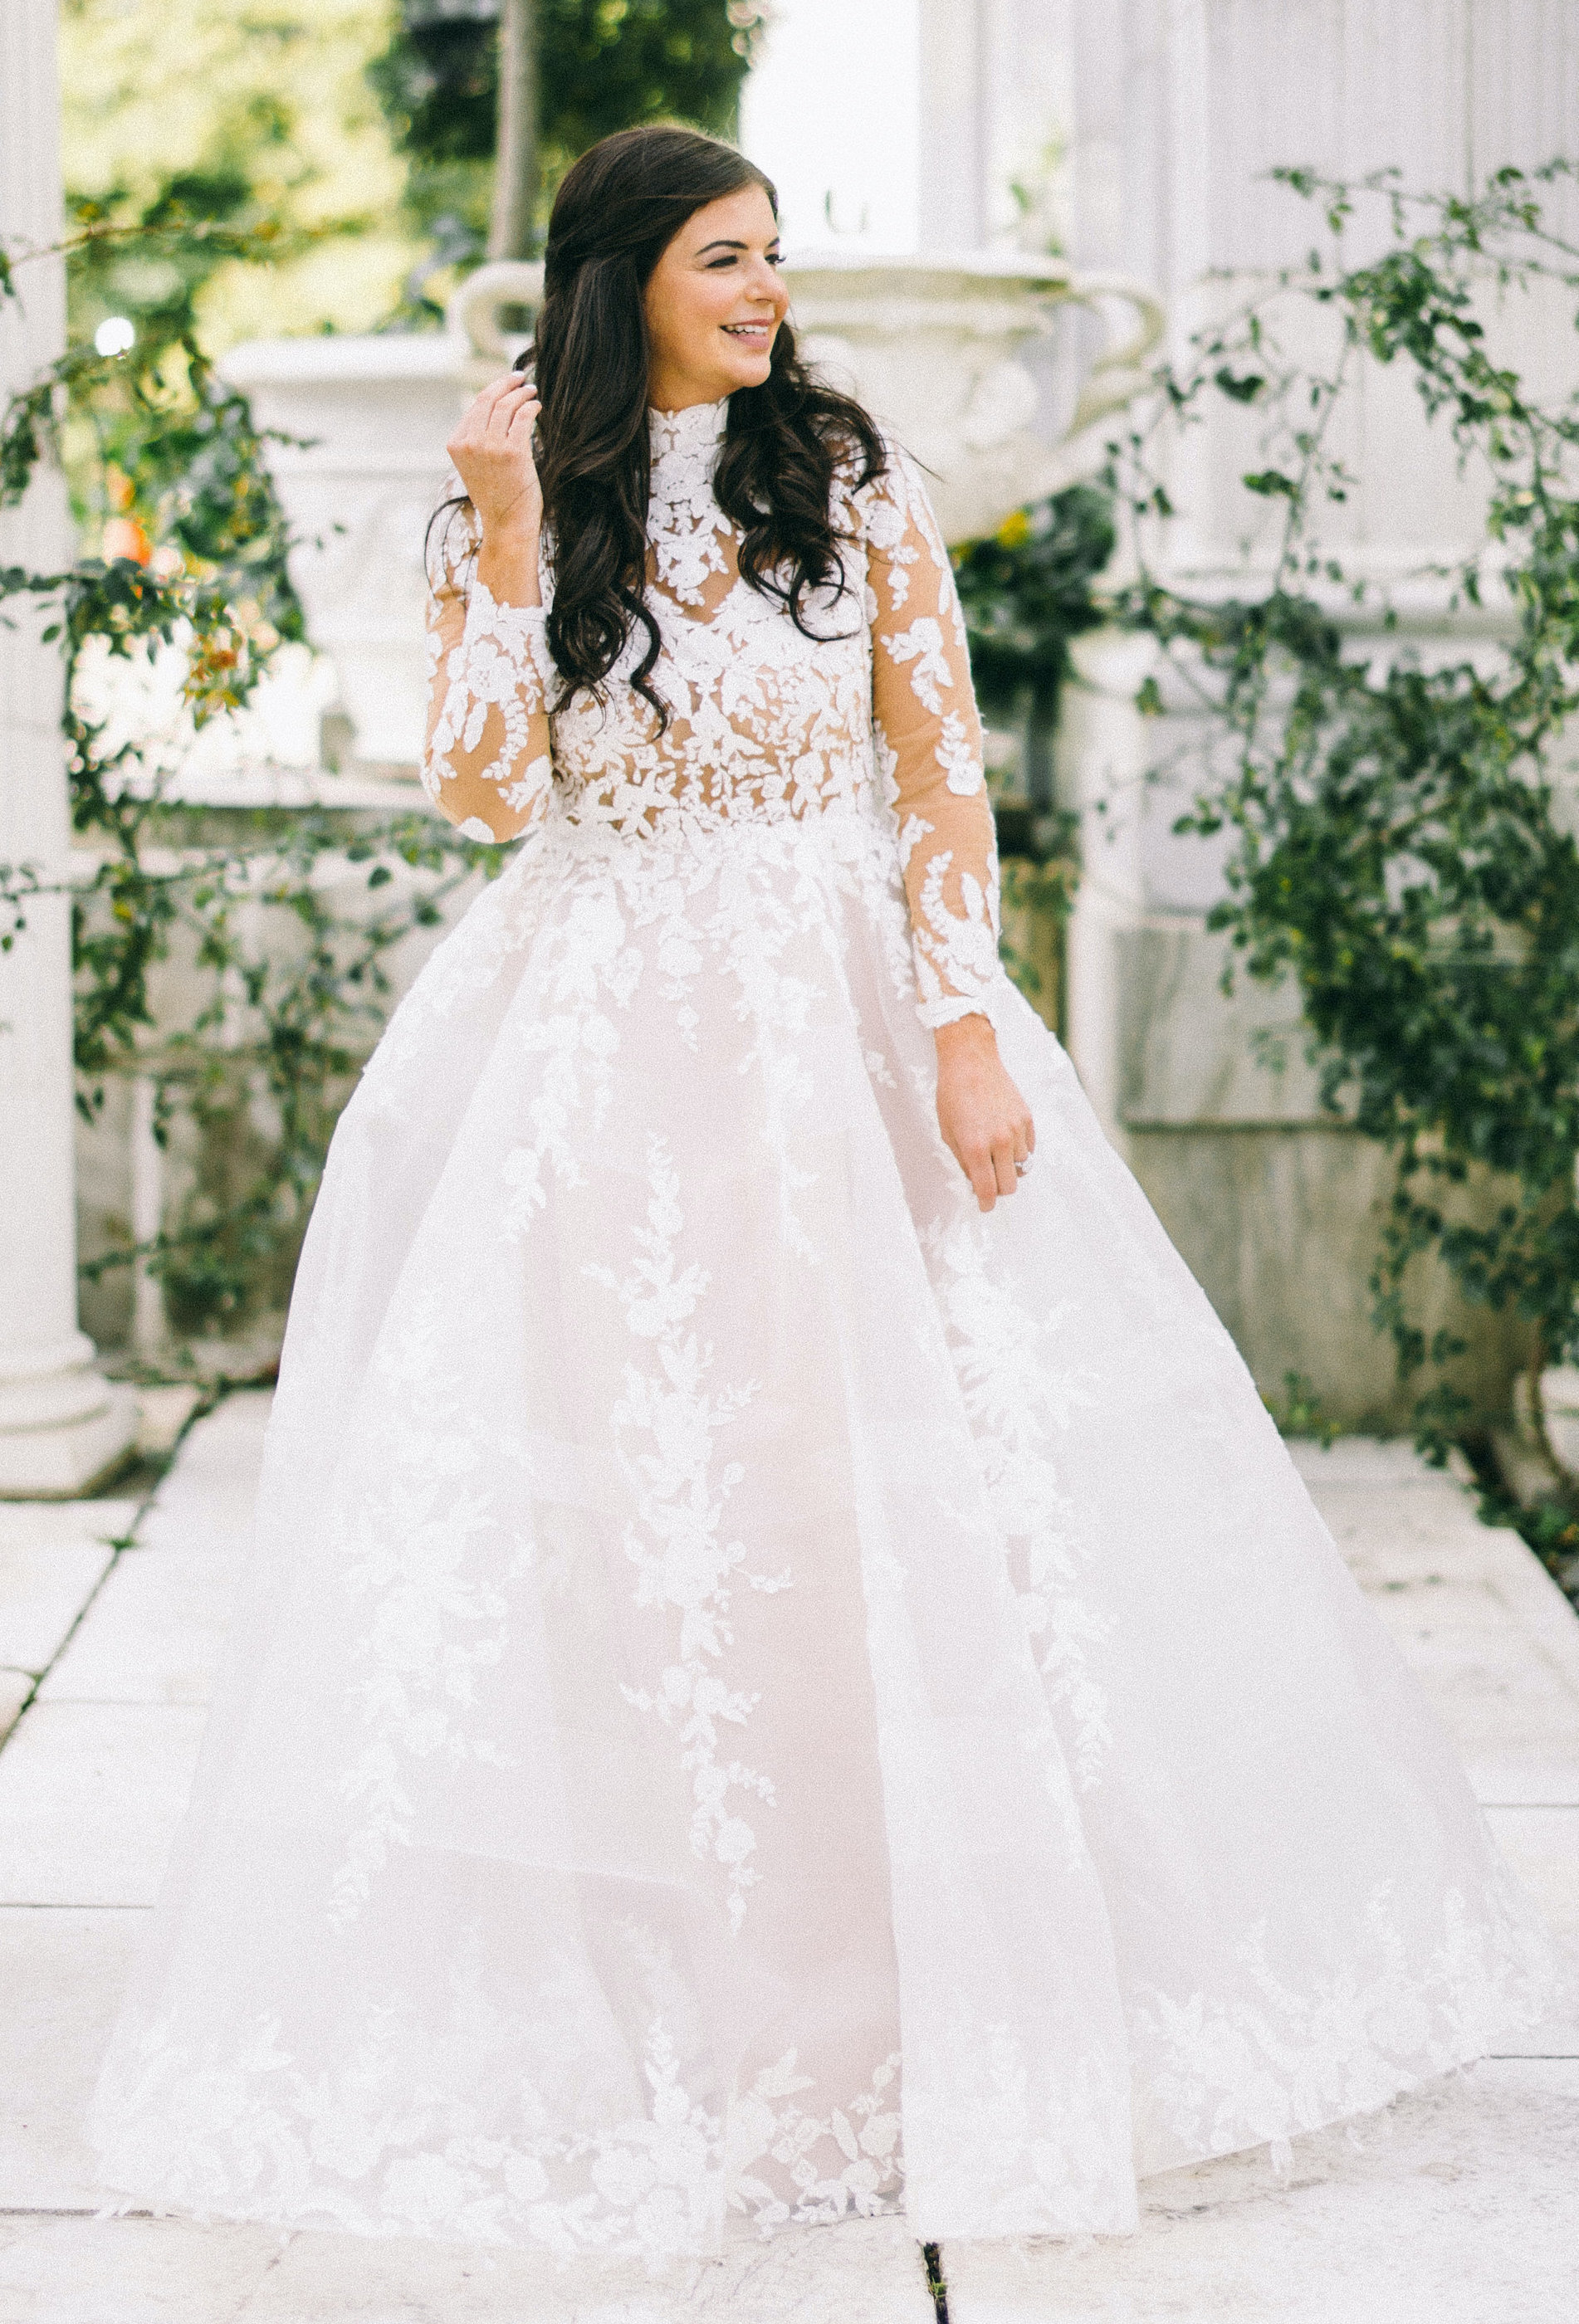 Brides order online wedding dresses from Anomalie. Popular elements brides order online from Anomalie include wedding dresses with a Ball Gown silhouette and lace sleeves.